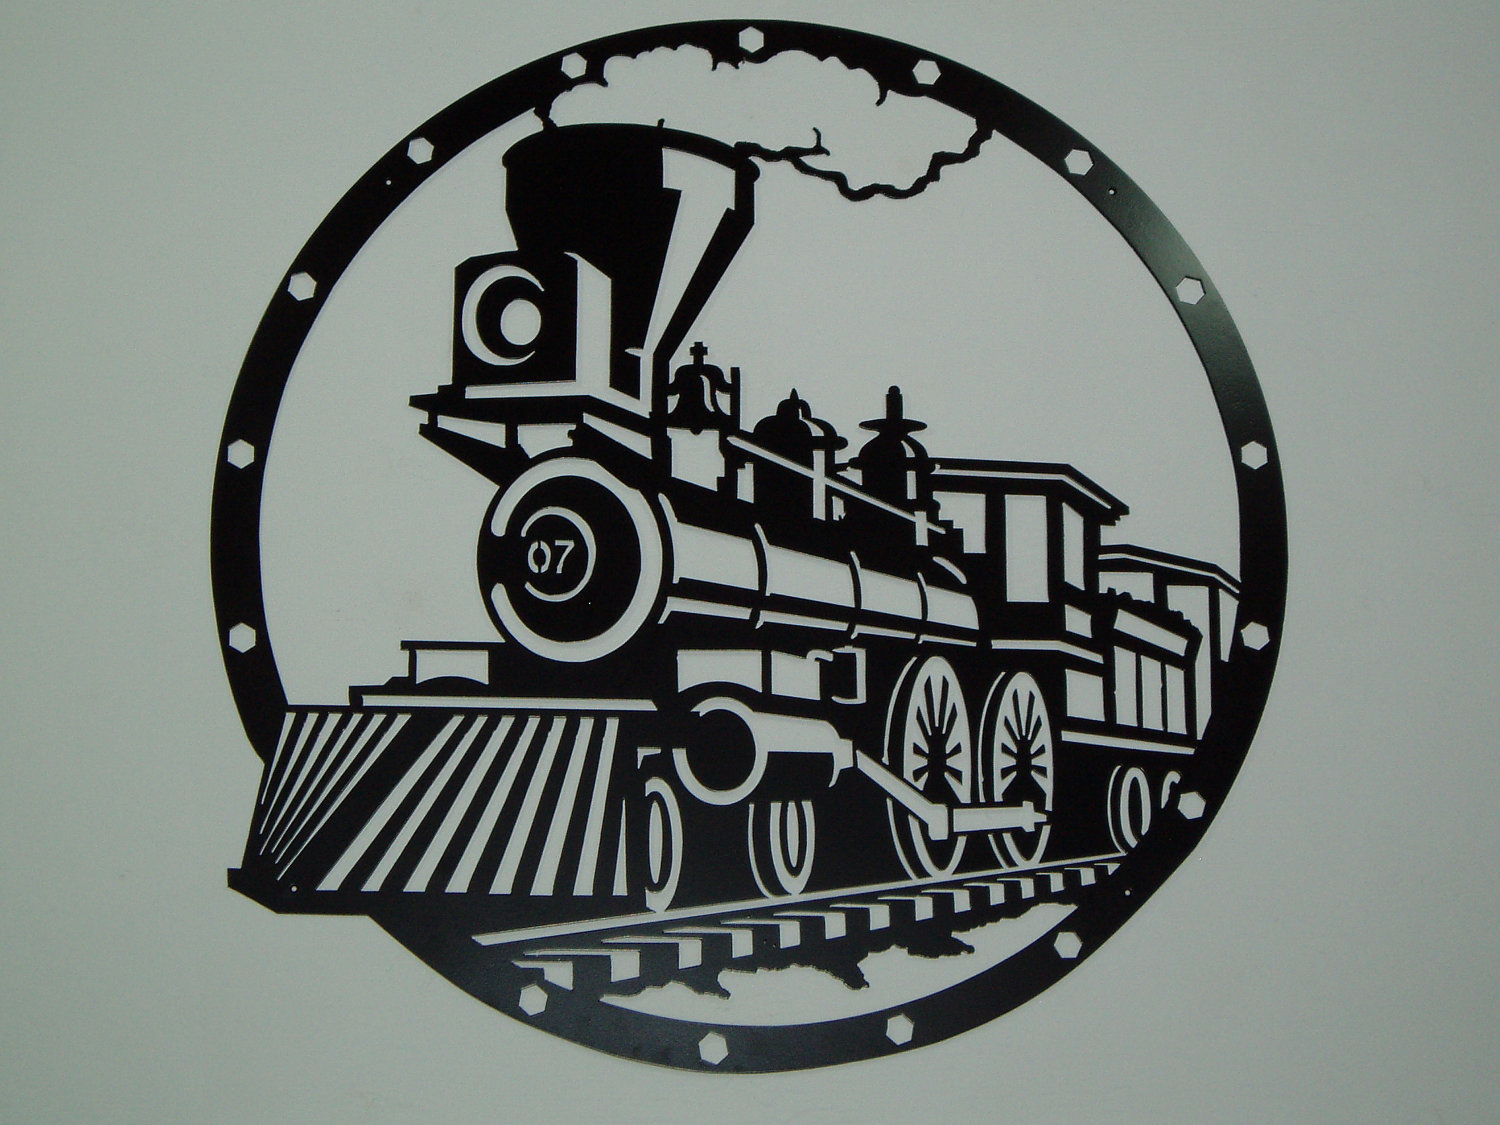 Train engines front view clipart transparent Free Steam Train Cliparts, Download Free Clip Art, Free Clip ... transparent